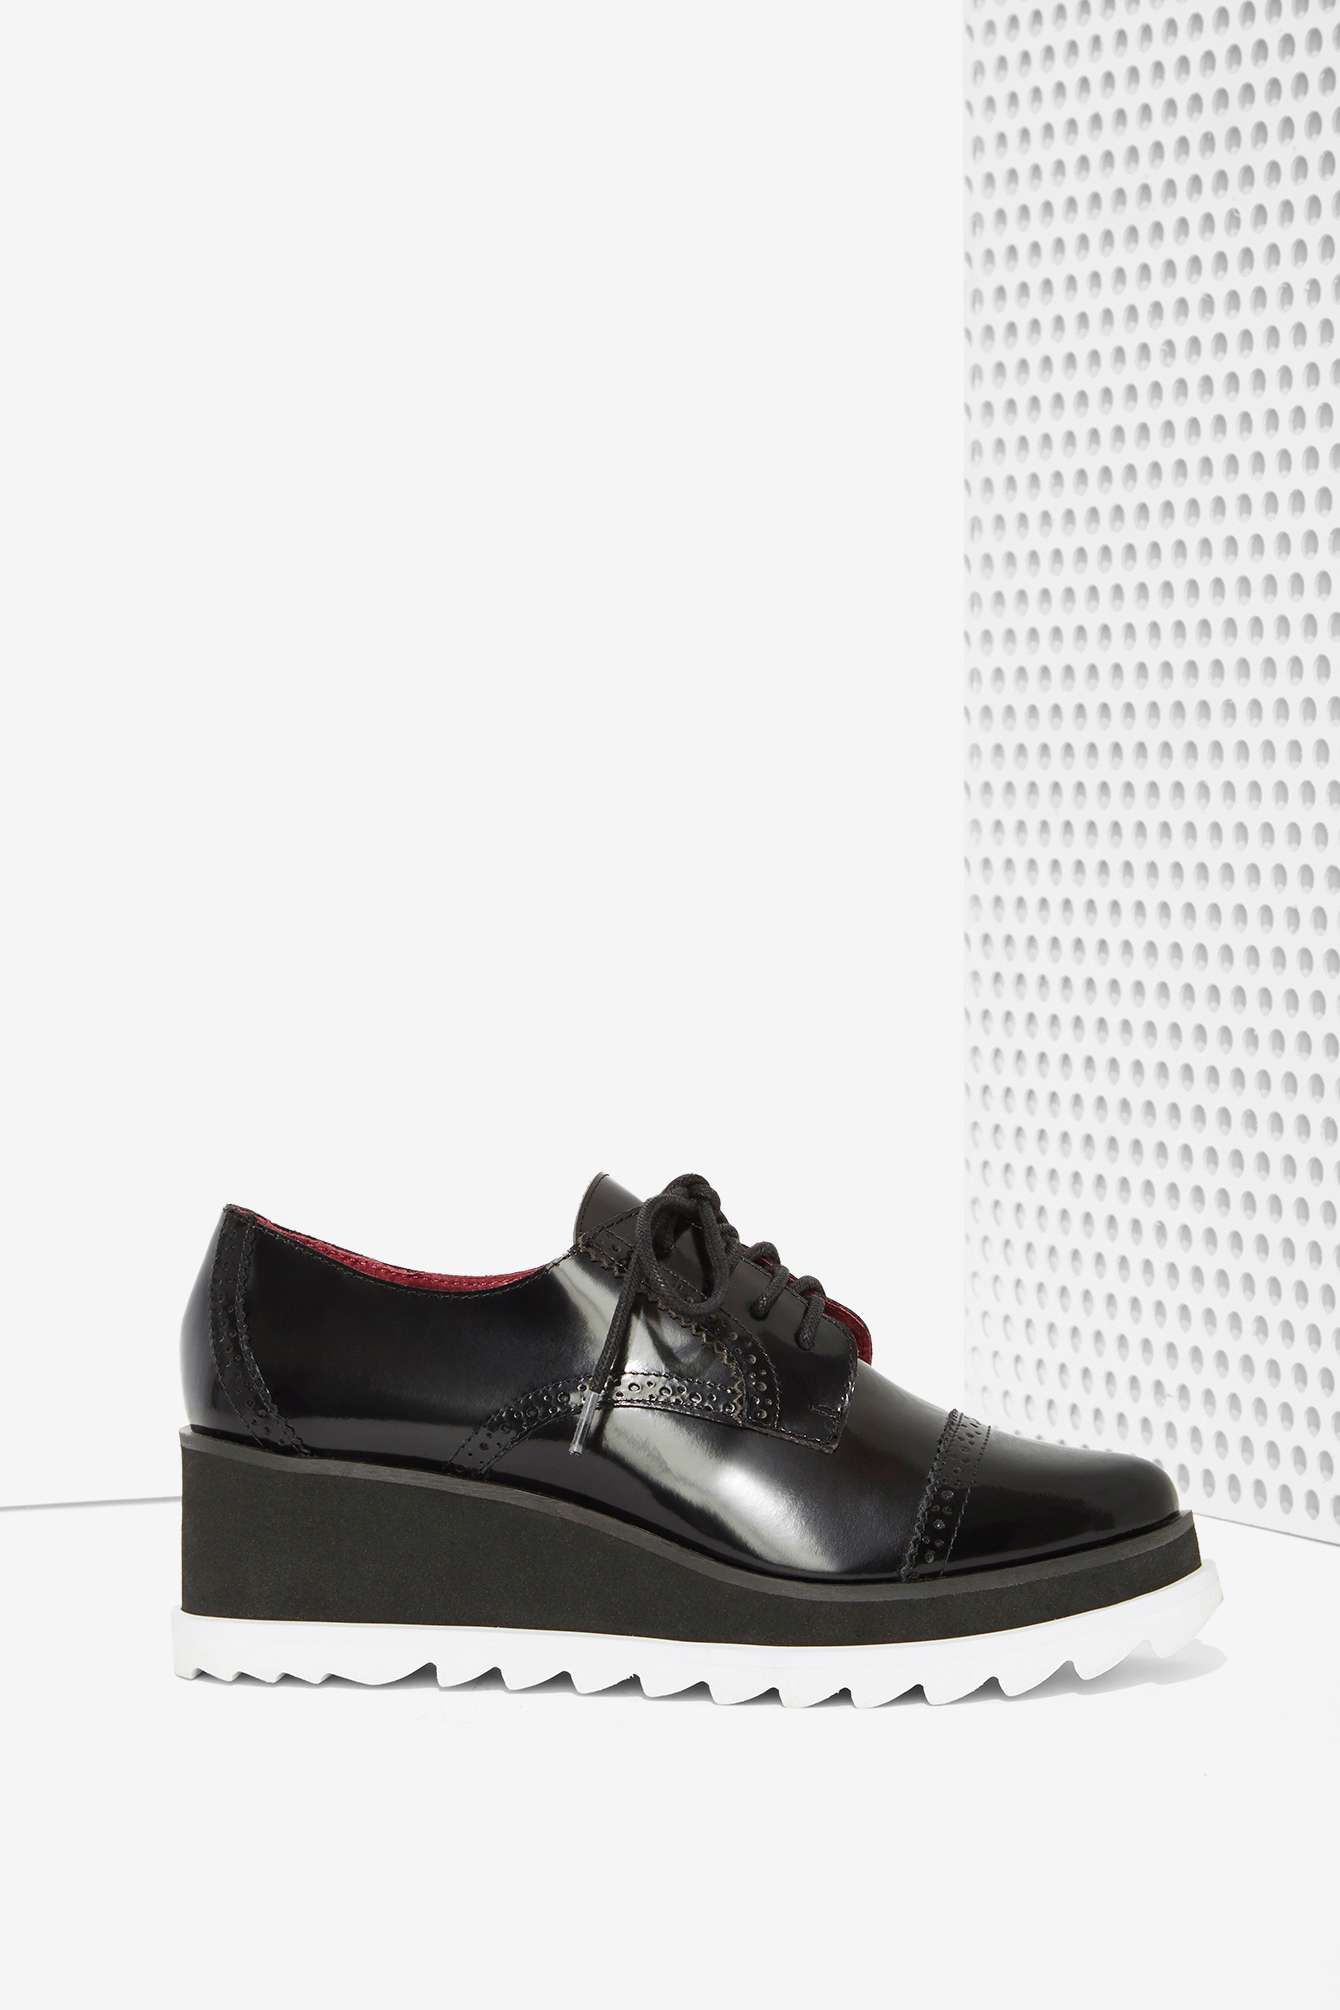 7aef5269be73ea Sixty Seven Harper Leather Oxford